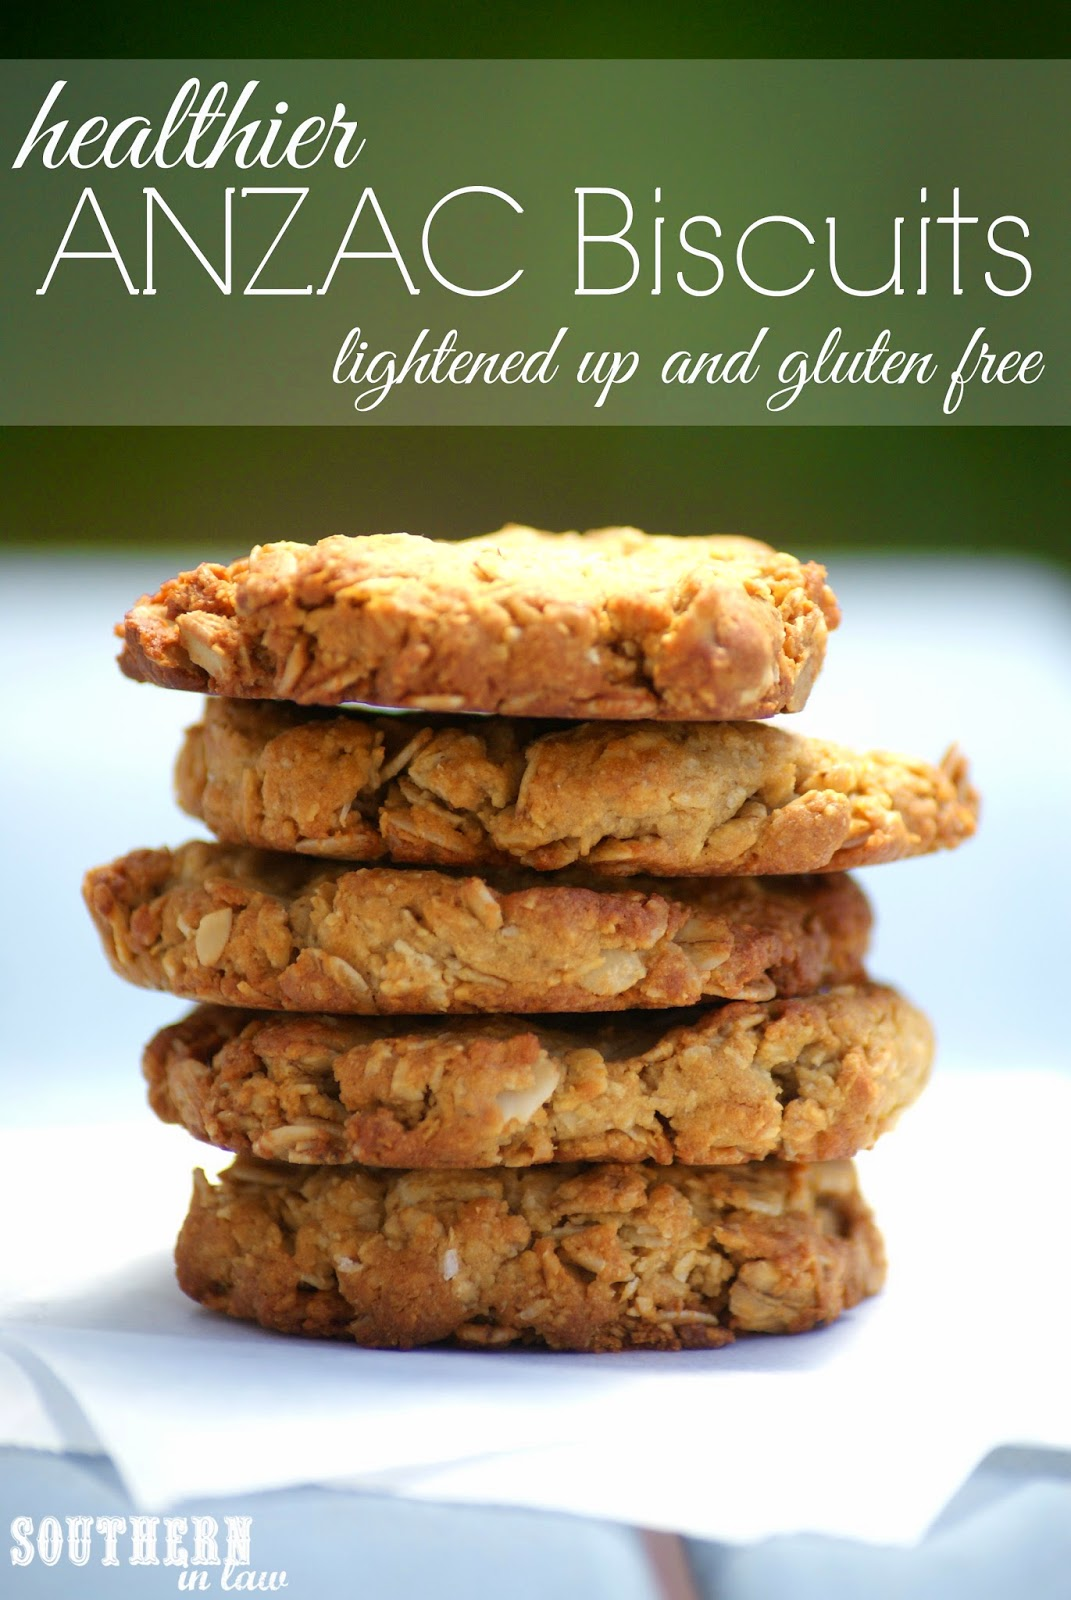 Healthier ANZAC Cookie Recipe - Gluten free, low fat, low sugar, eggless, freezer friendly, healthy recipe